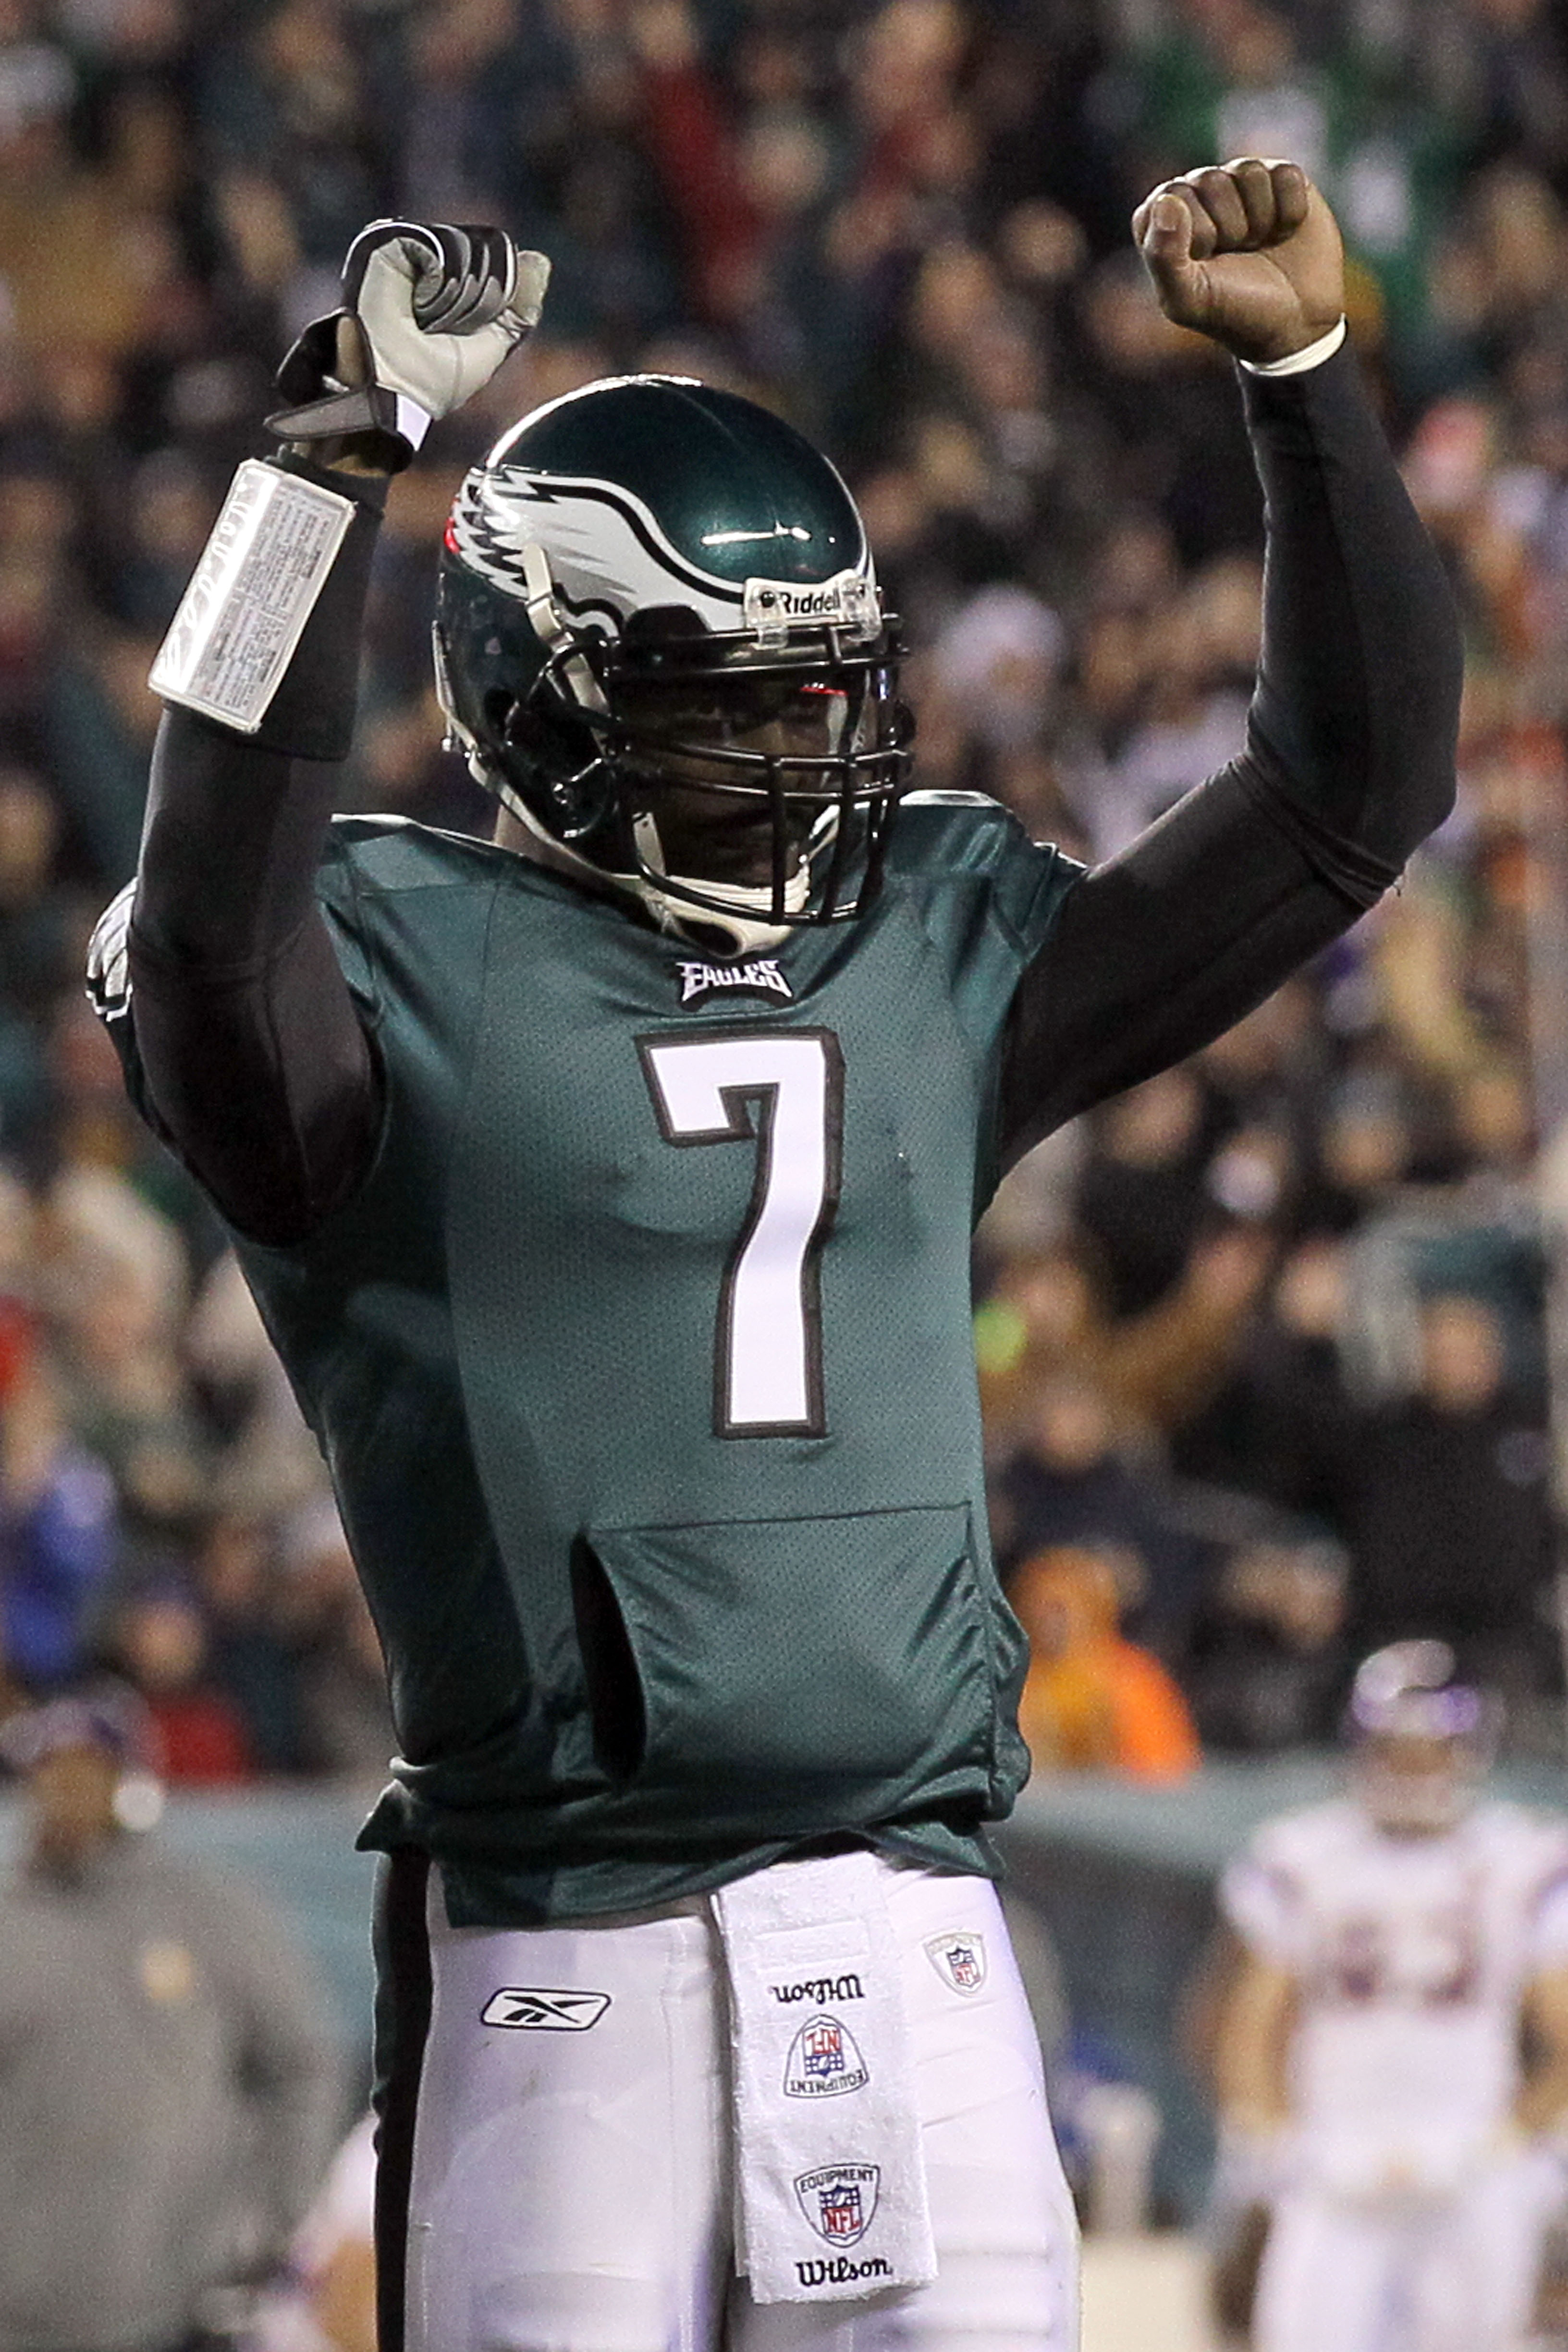 PHILADELPHIA, PA - DECEMBER 26:  Michael Vick #7 of the Philadelphia Eagles celebrates after a touchdown against the Minnesota Vikings at Lincoln Financial Field on December 26, 2010 in Philadelphia, Pennsylvania.  (Photo by Jim McIsaac/Getty Images)